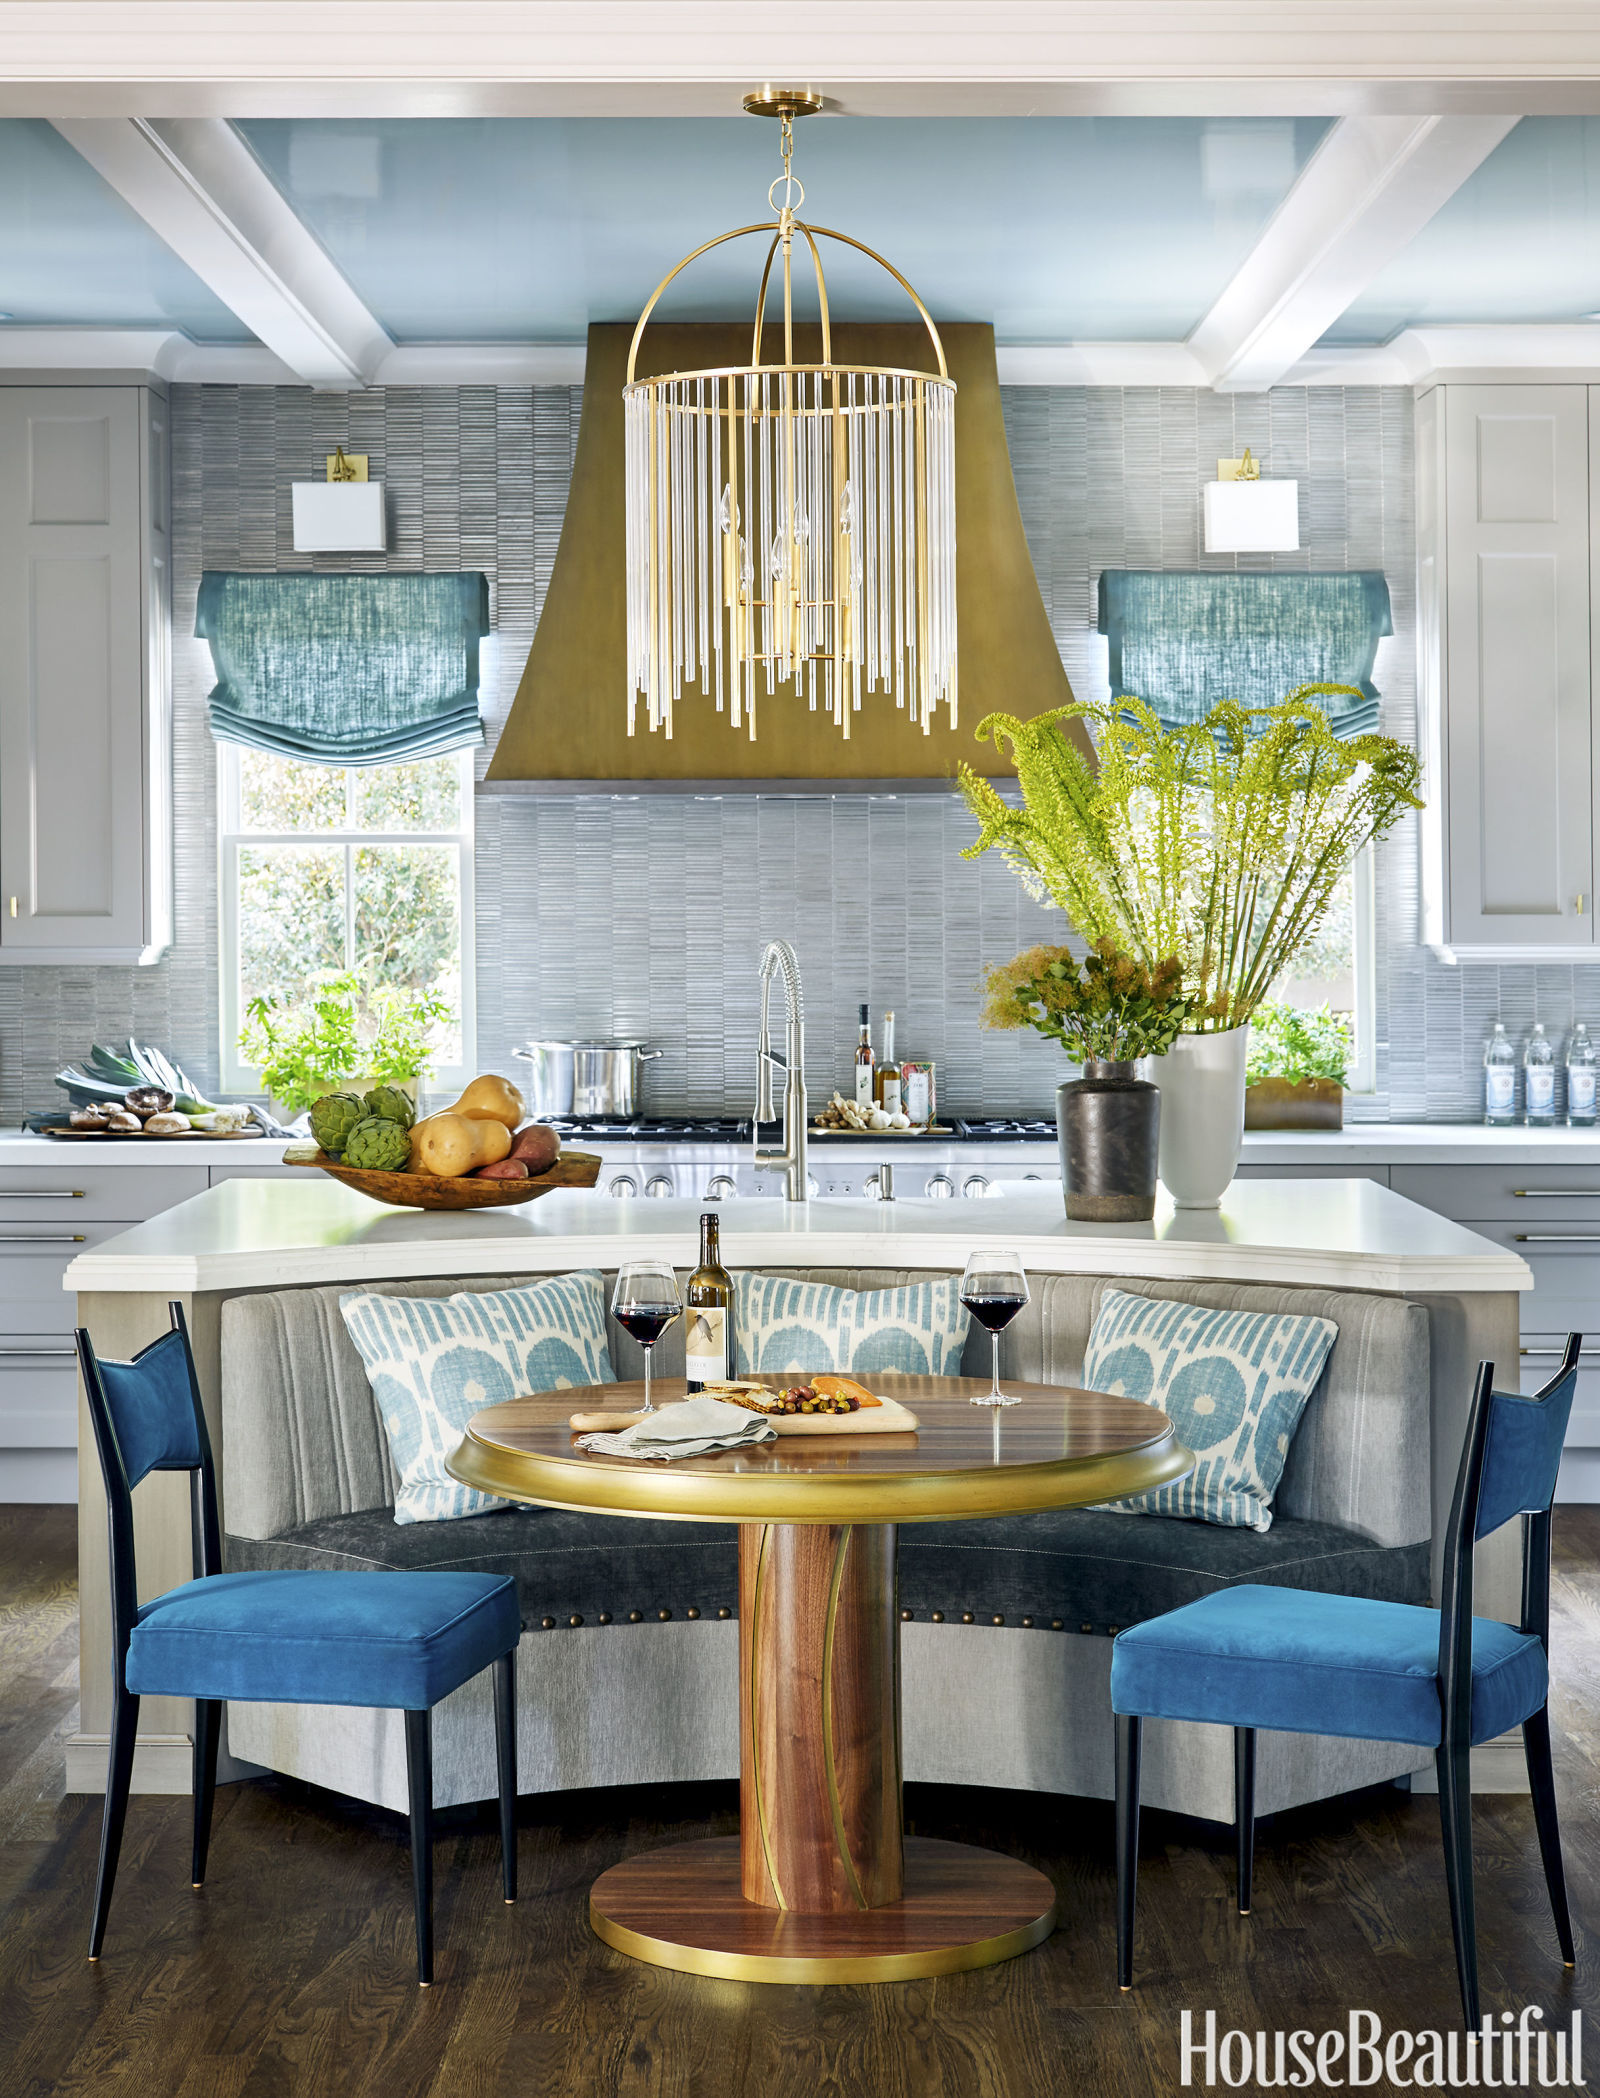 Did You Know A Great Kitchen Can Help Sell A Home